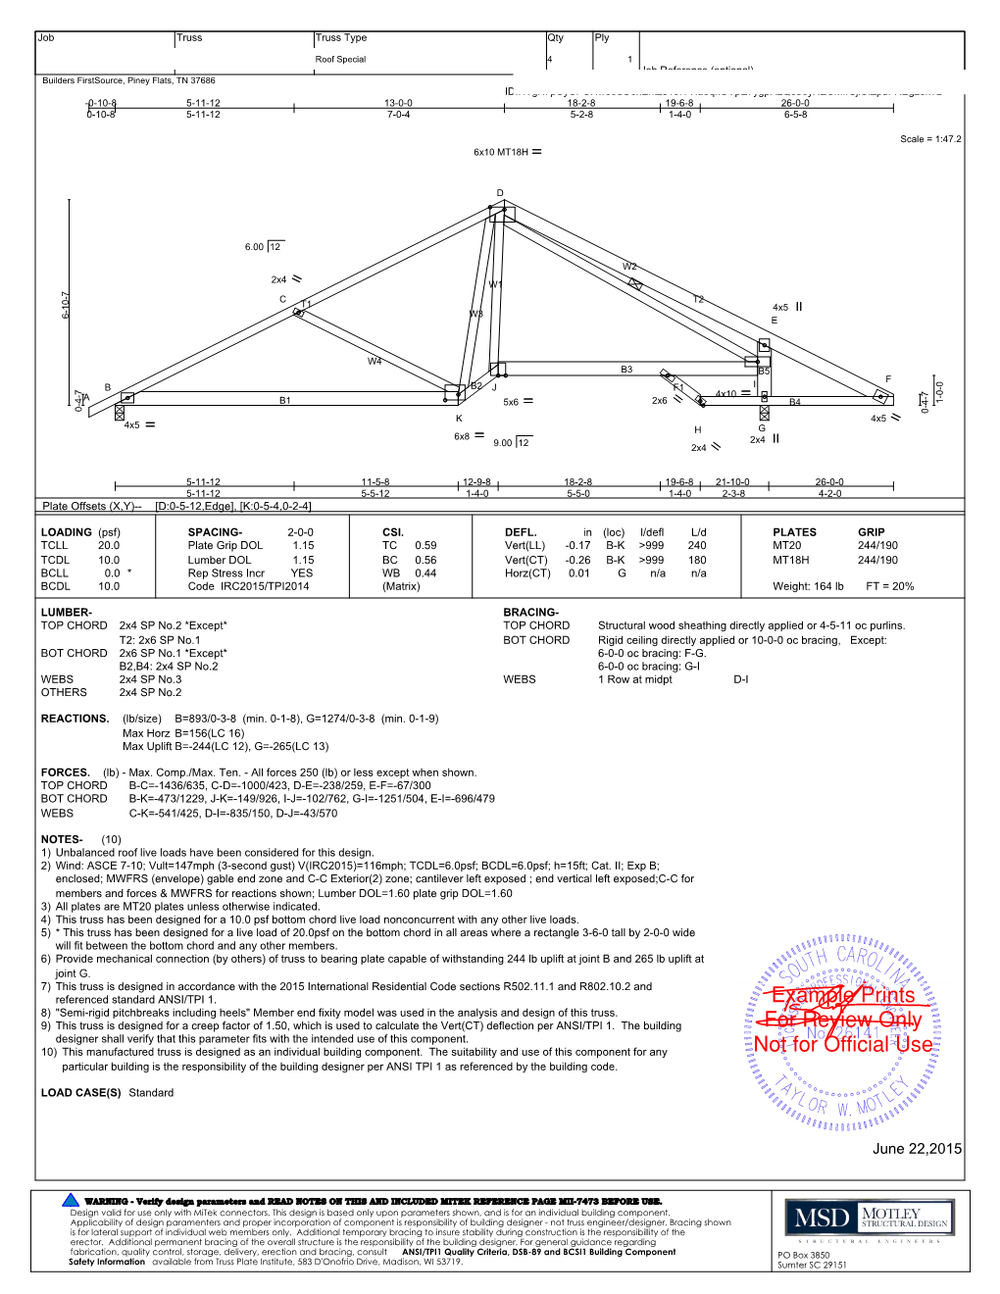 Seals Example Page 008.png